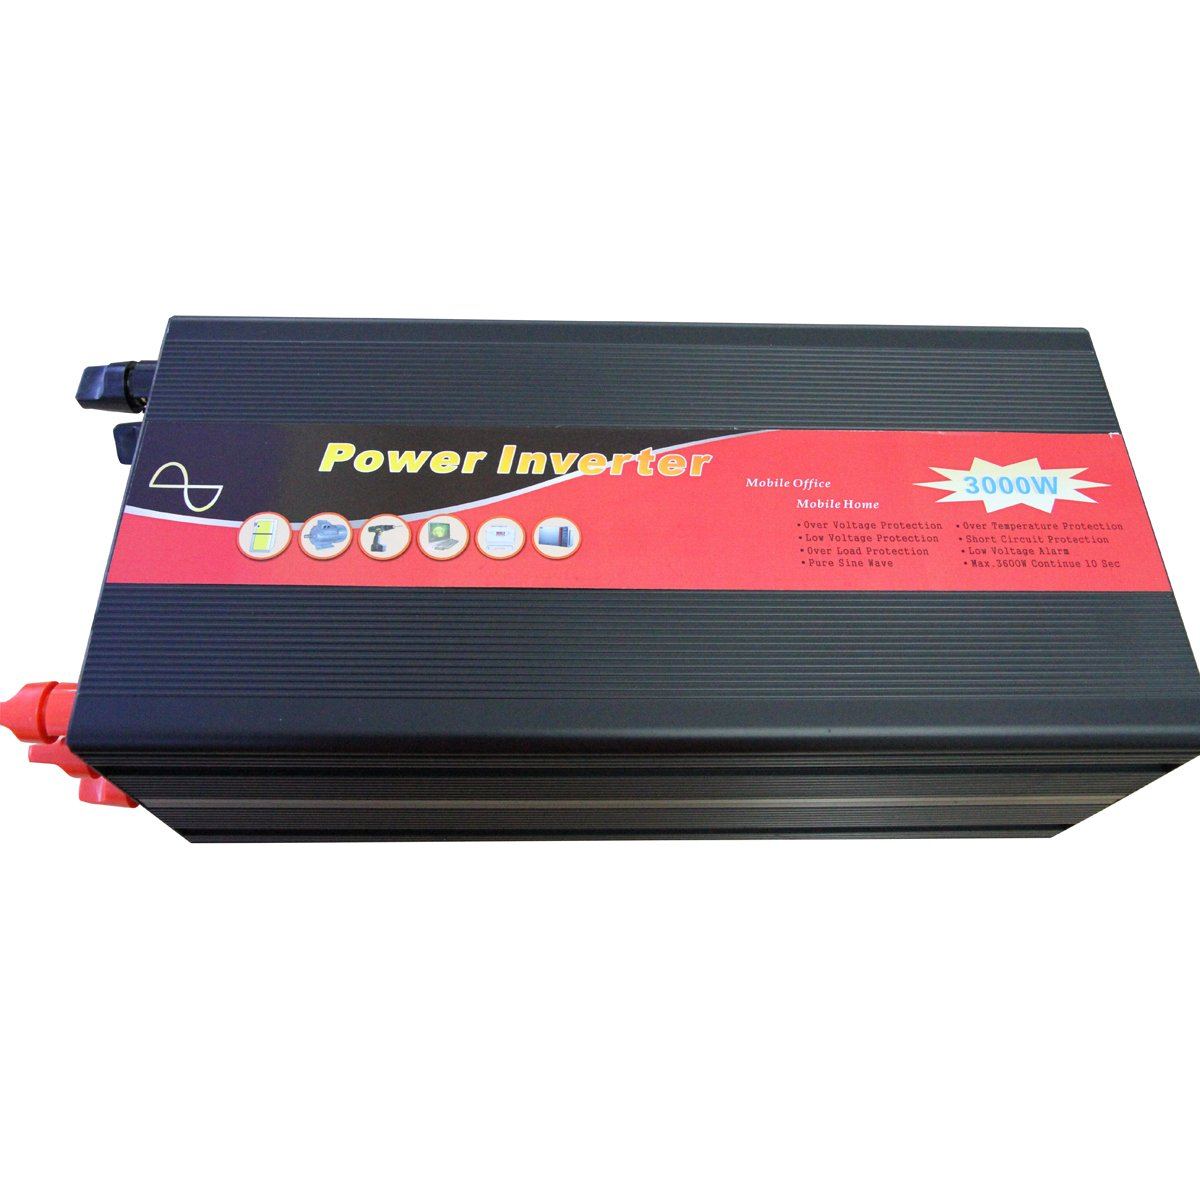 Gtsun 3000w Dc 12v Ac 110v 220v 230v 240v Pure Sine Wave Power Inverter Circuit 12vdc To 230vac Usb Free Shippingfuse Built In Easily Changed